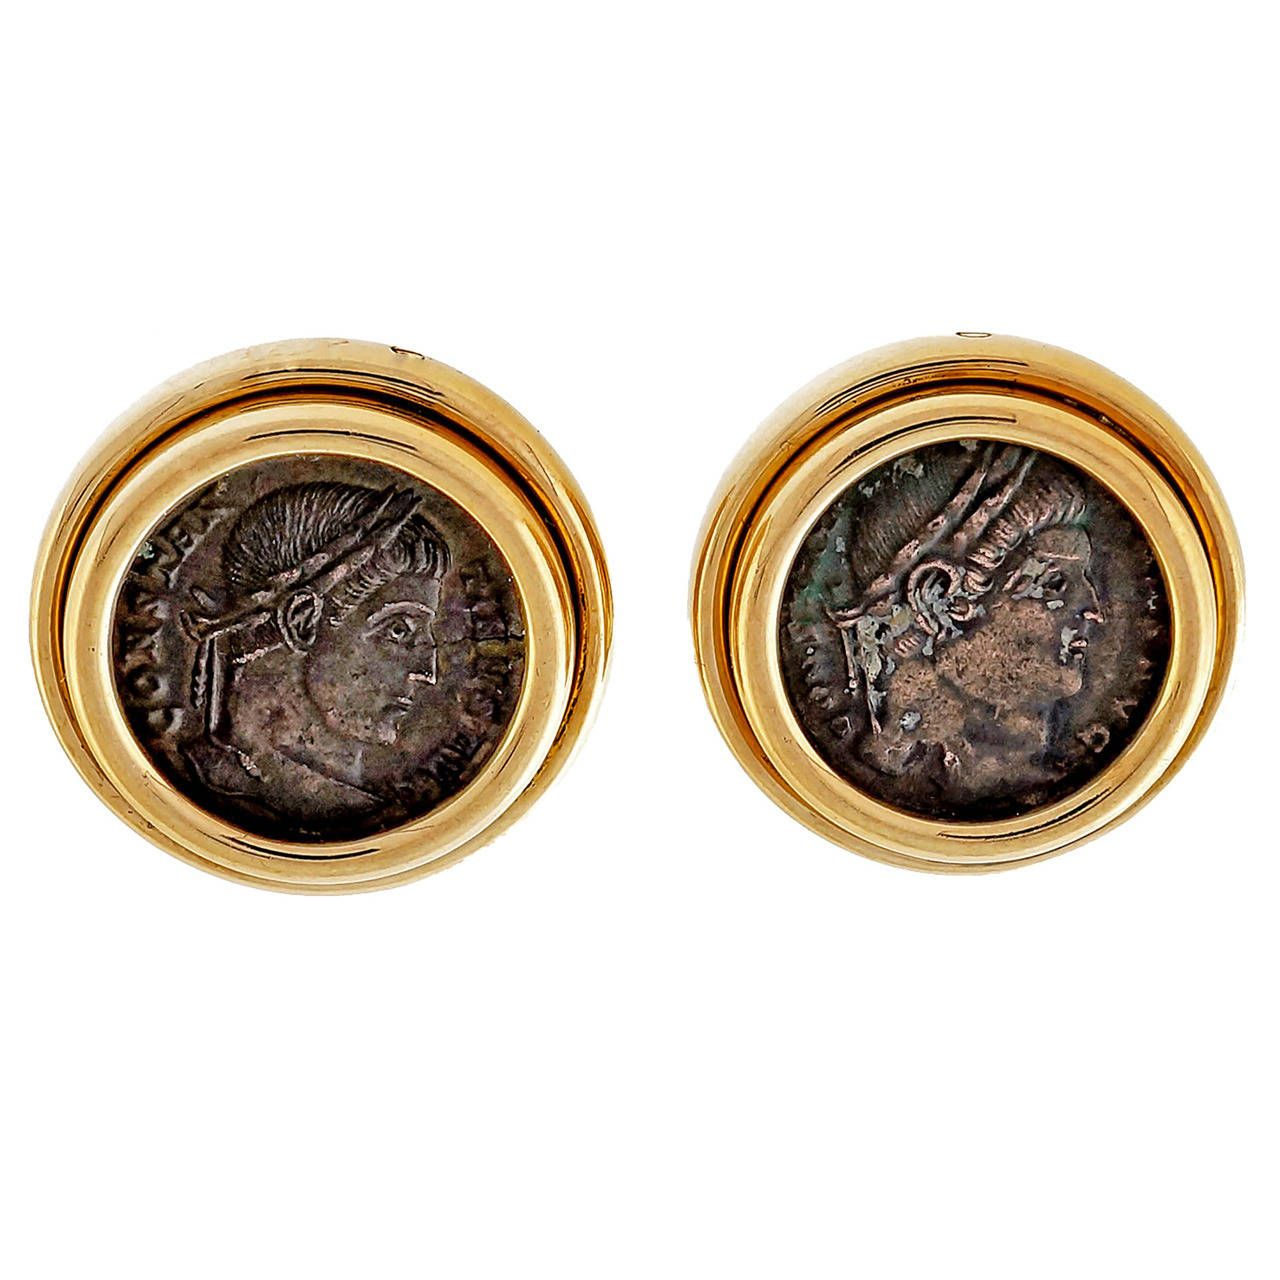 Bulgari Ancient Roman Coin Gold Earrings | From a unique collection of vintage more earrings at https://www.1stdibs.com/jewelry/earrings/more-earrings/